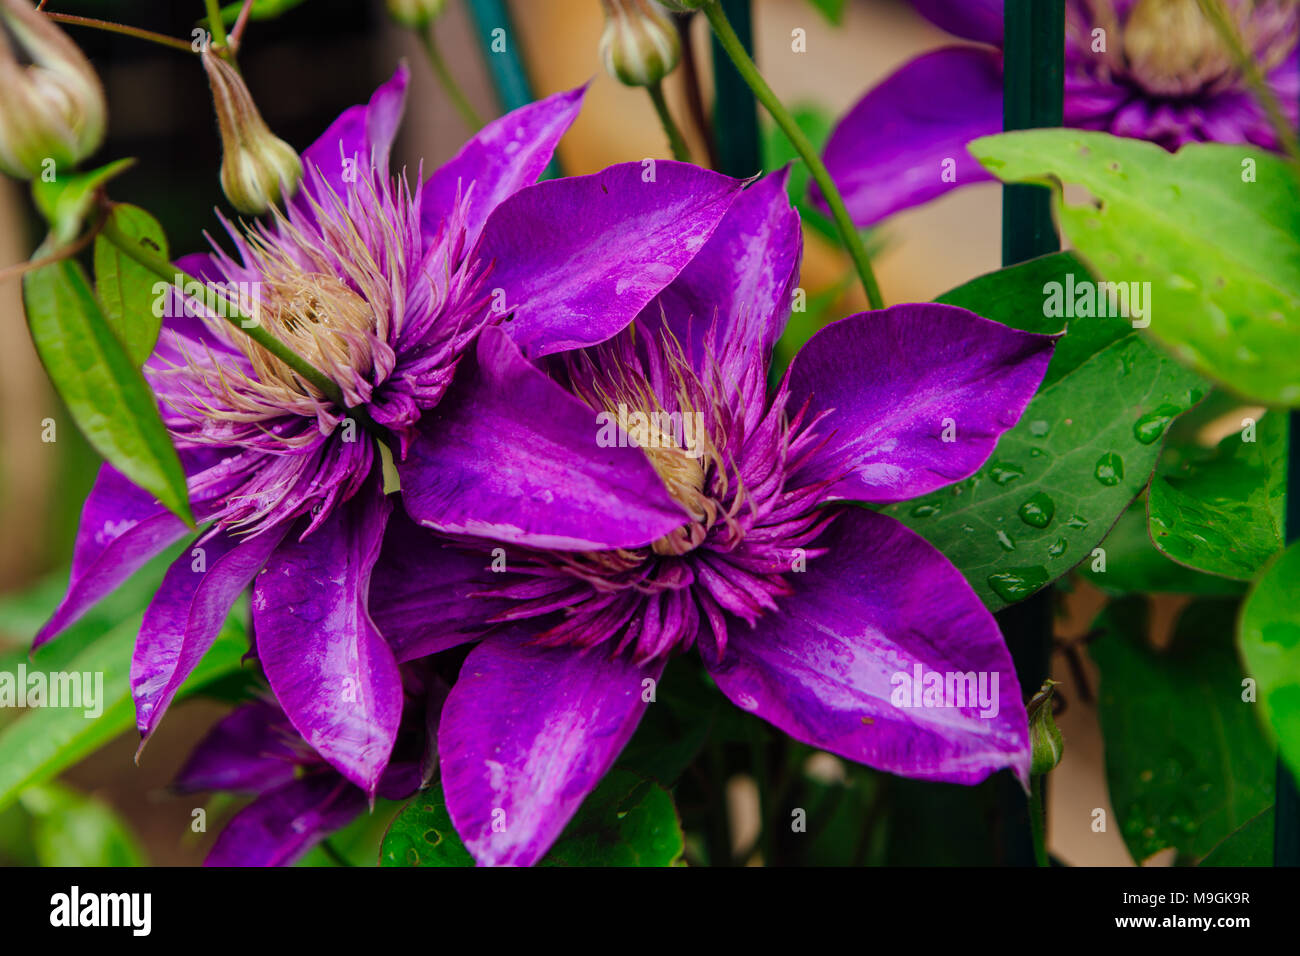 Close Up Big Purple Flowers Named Clematis Or President Flower Stock